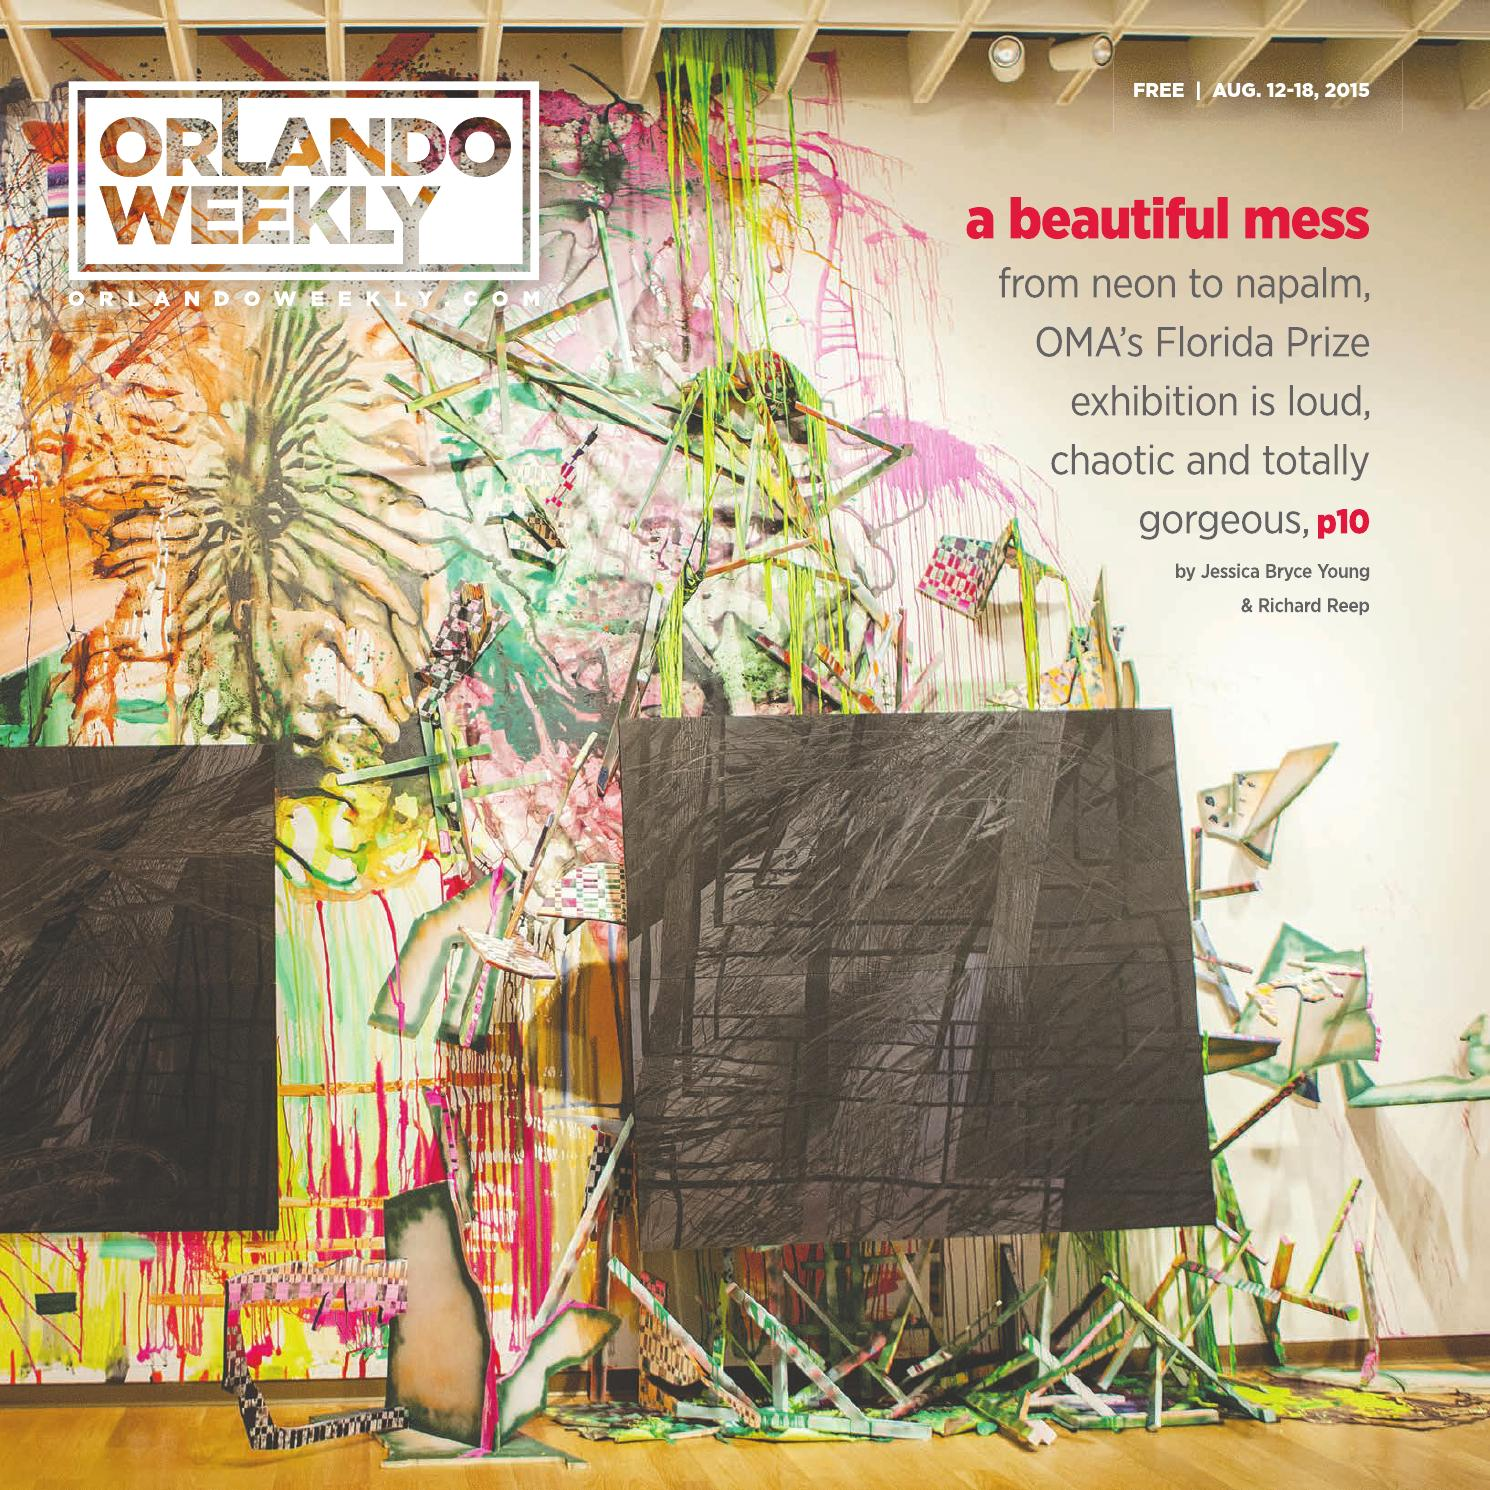 01030f89d Orlando Weekly August 12, 2015 by Euclid Media Group - issuu